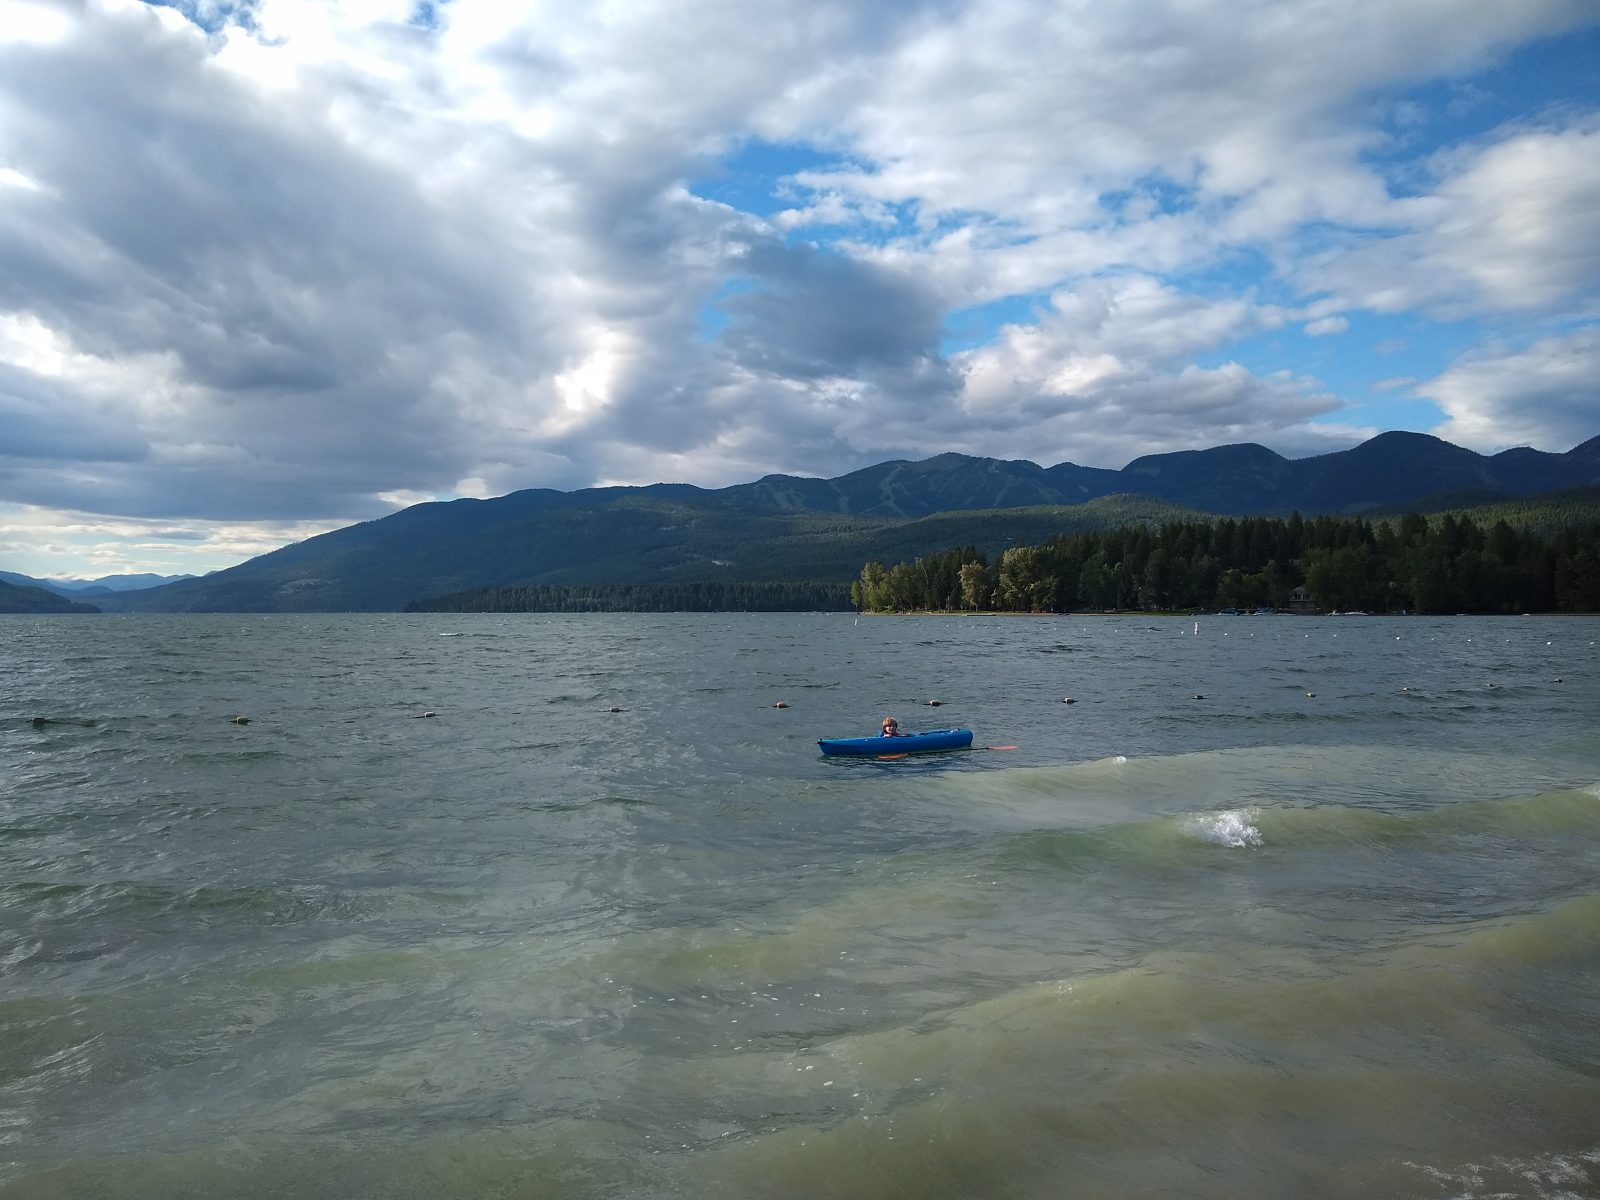 Whitefish Lake - June 21, 2020